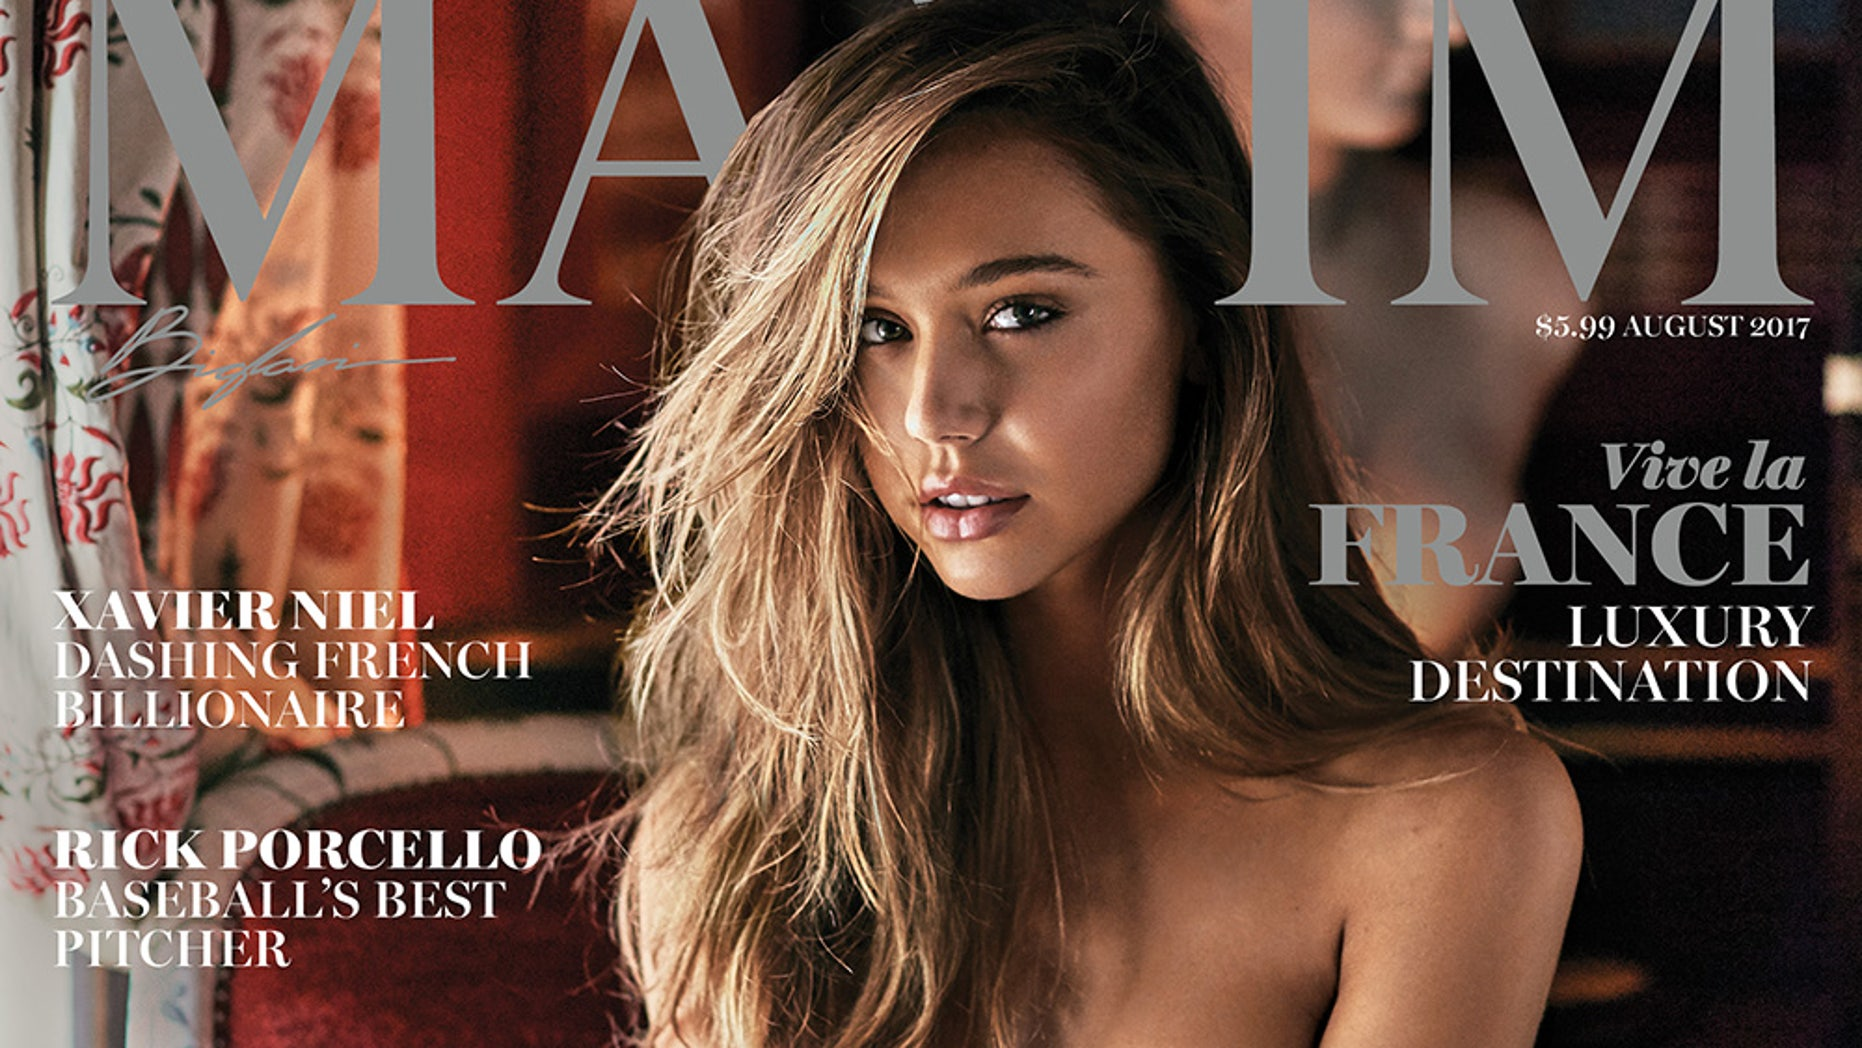 Alexis Ren is on the cover of Maxim's August 2017 issue.